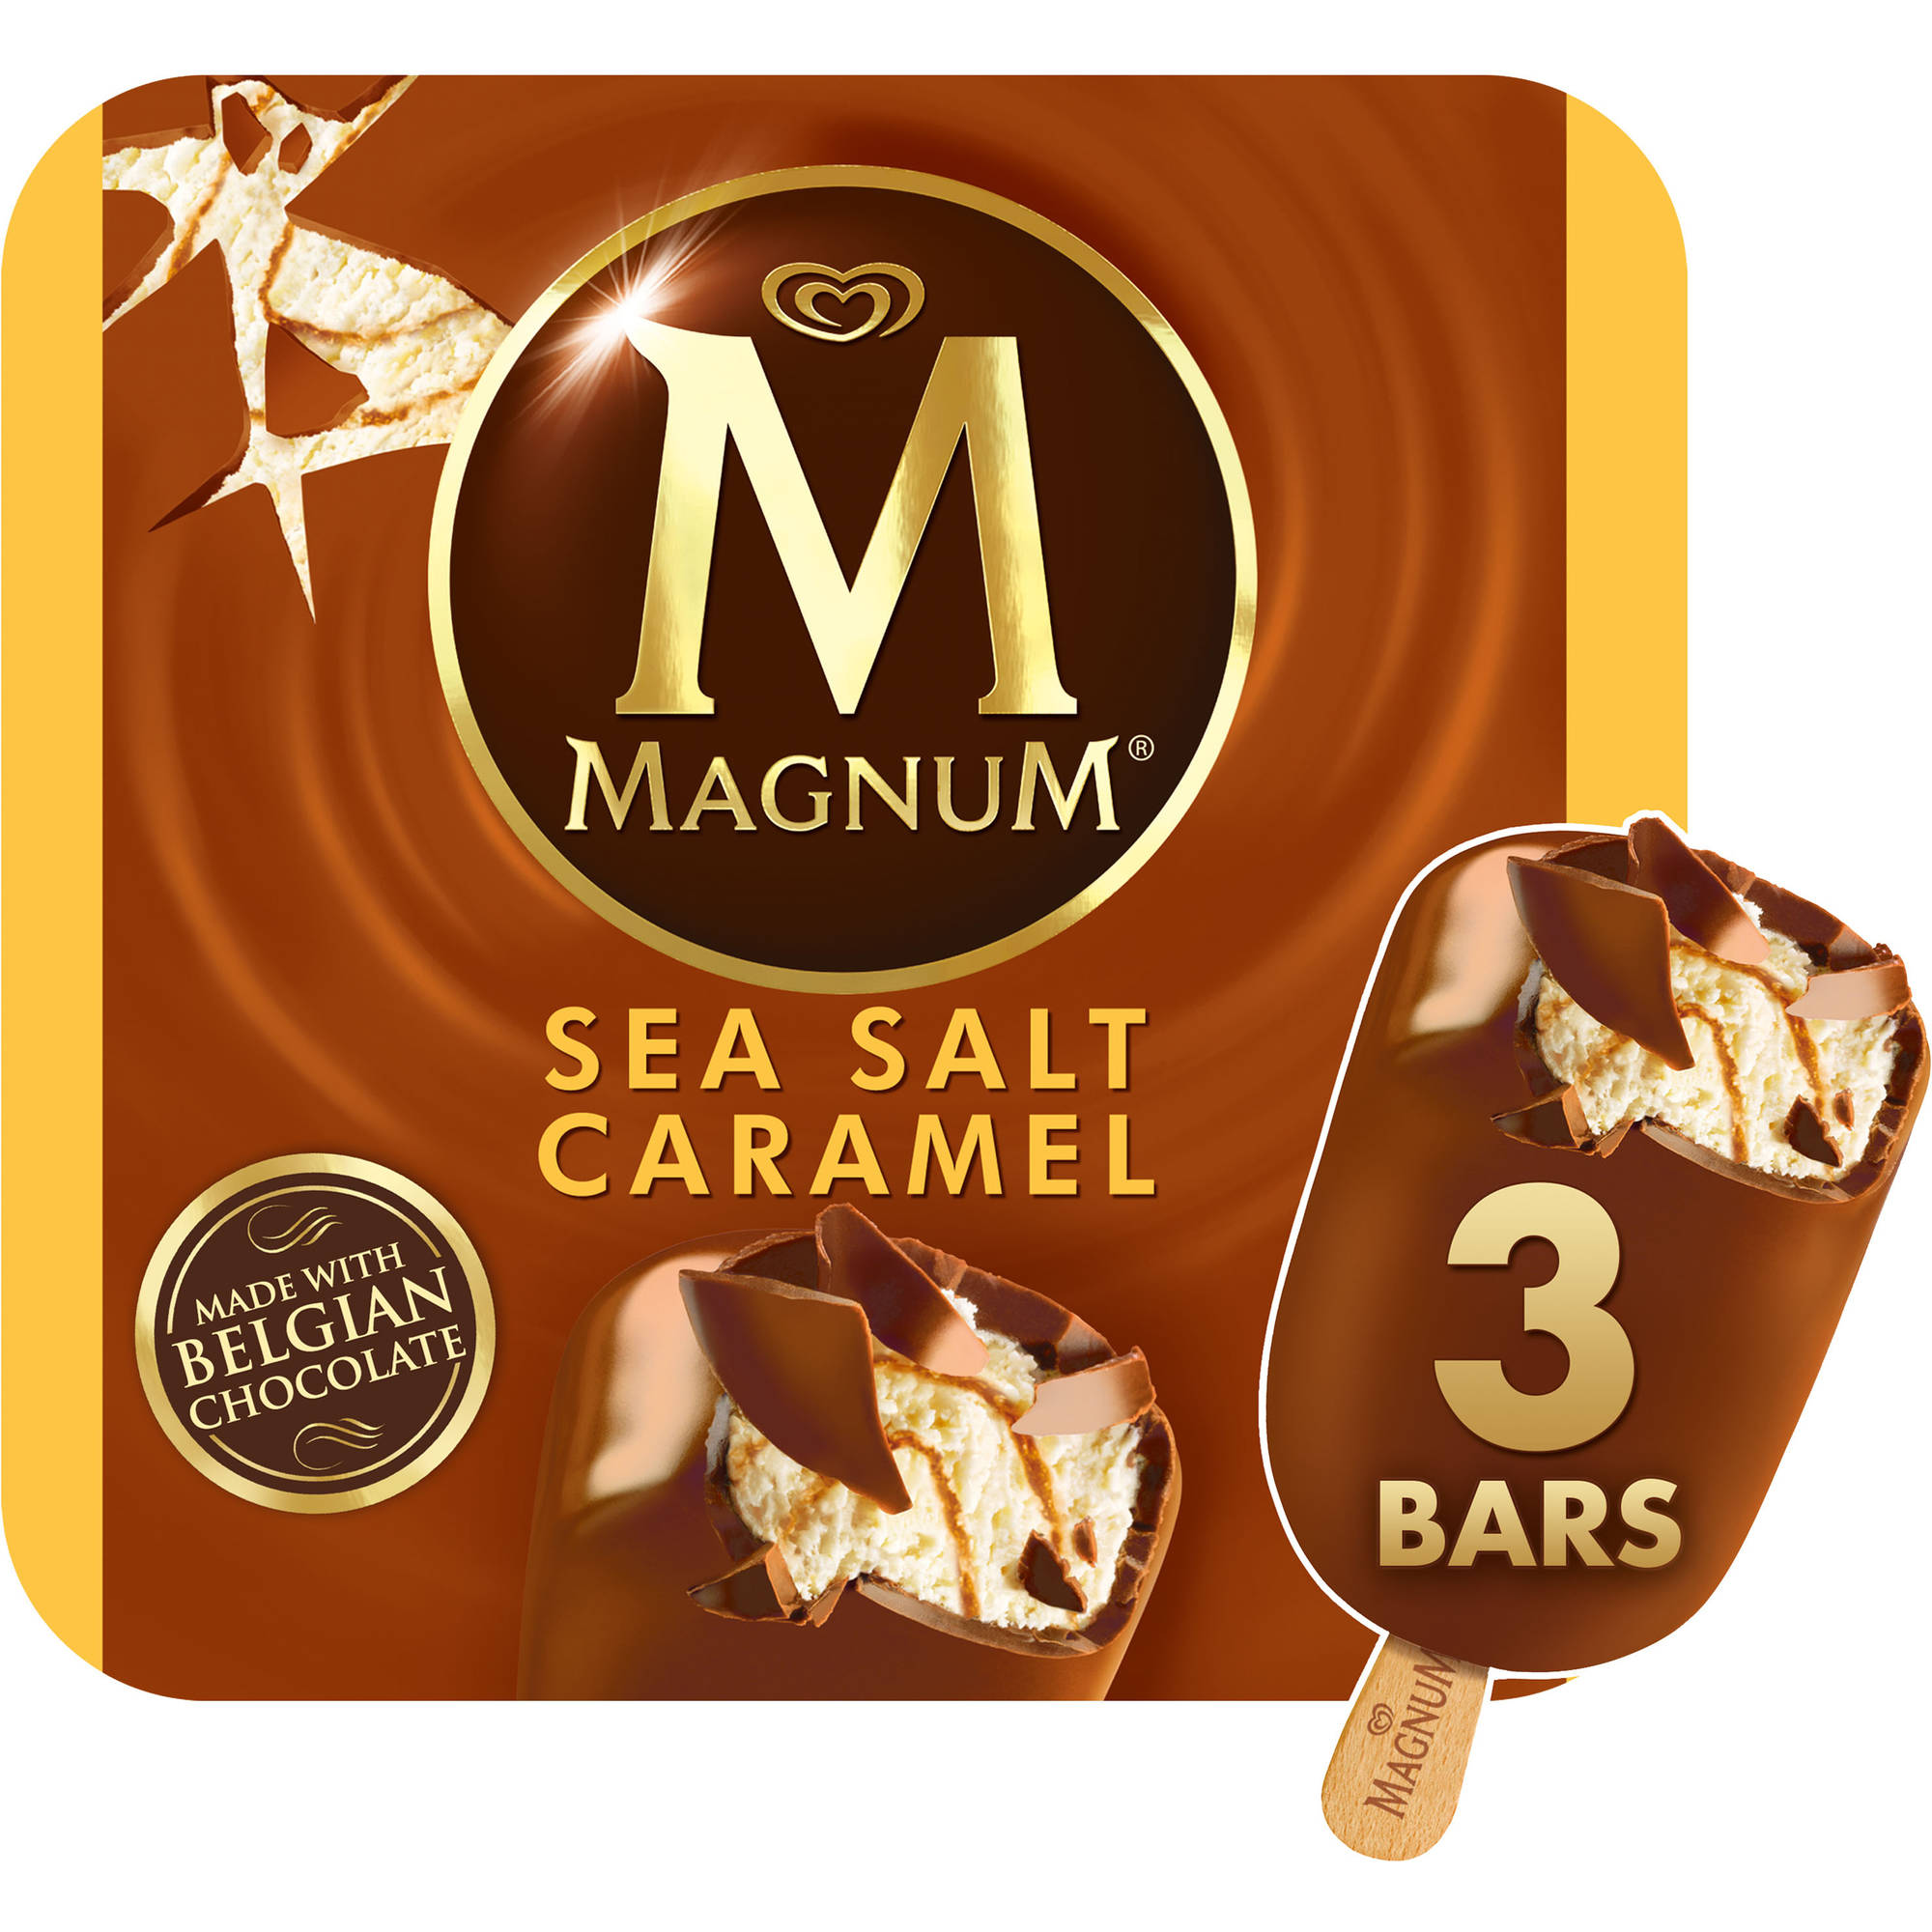 Magnum Sea Salt Caramel Ice Cream Bars, 3 count